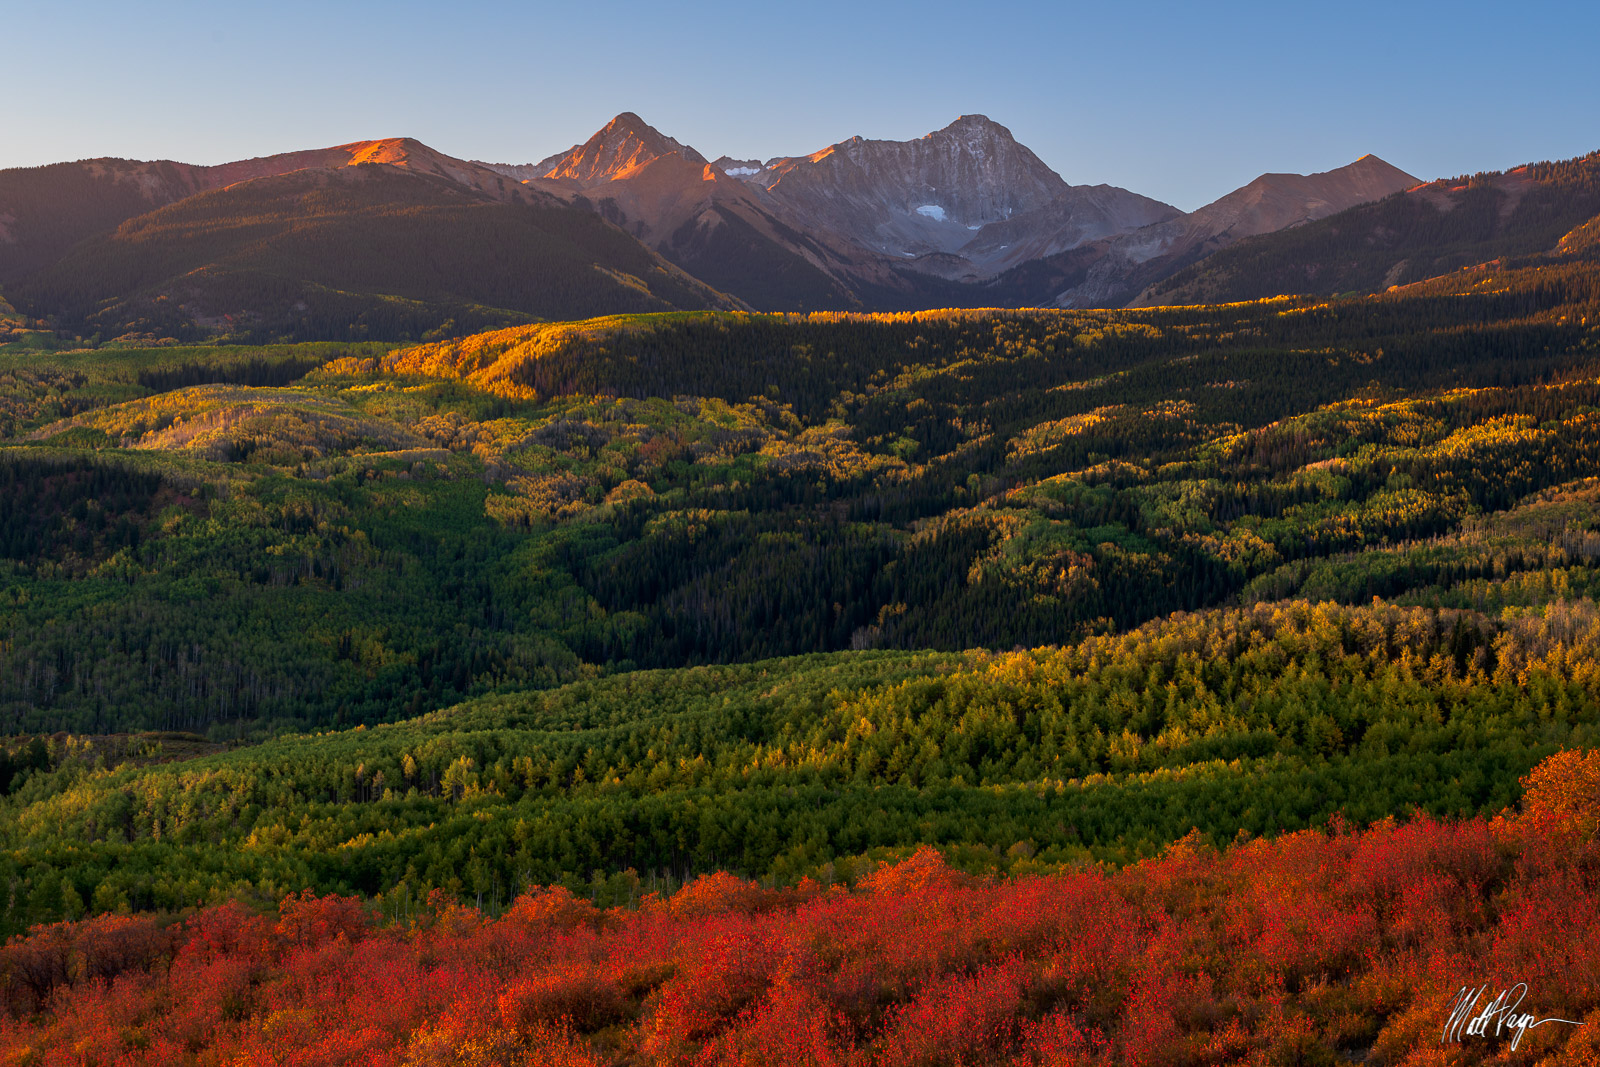 14er, Aspen, Aspen Trees, Autumn, Capitol Peak, Carbondale, Colorado, Elk Mountains, Fall, Fall Colors, Landscape, Mount Daly, scrub oak, photo